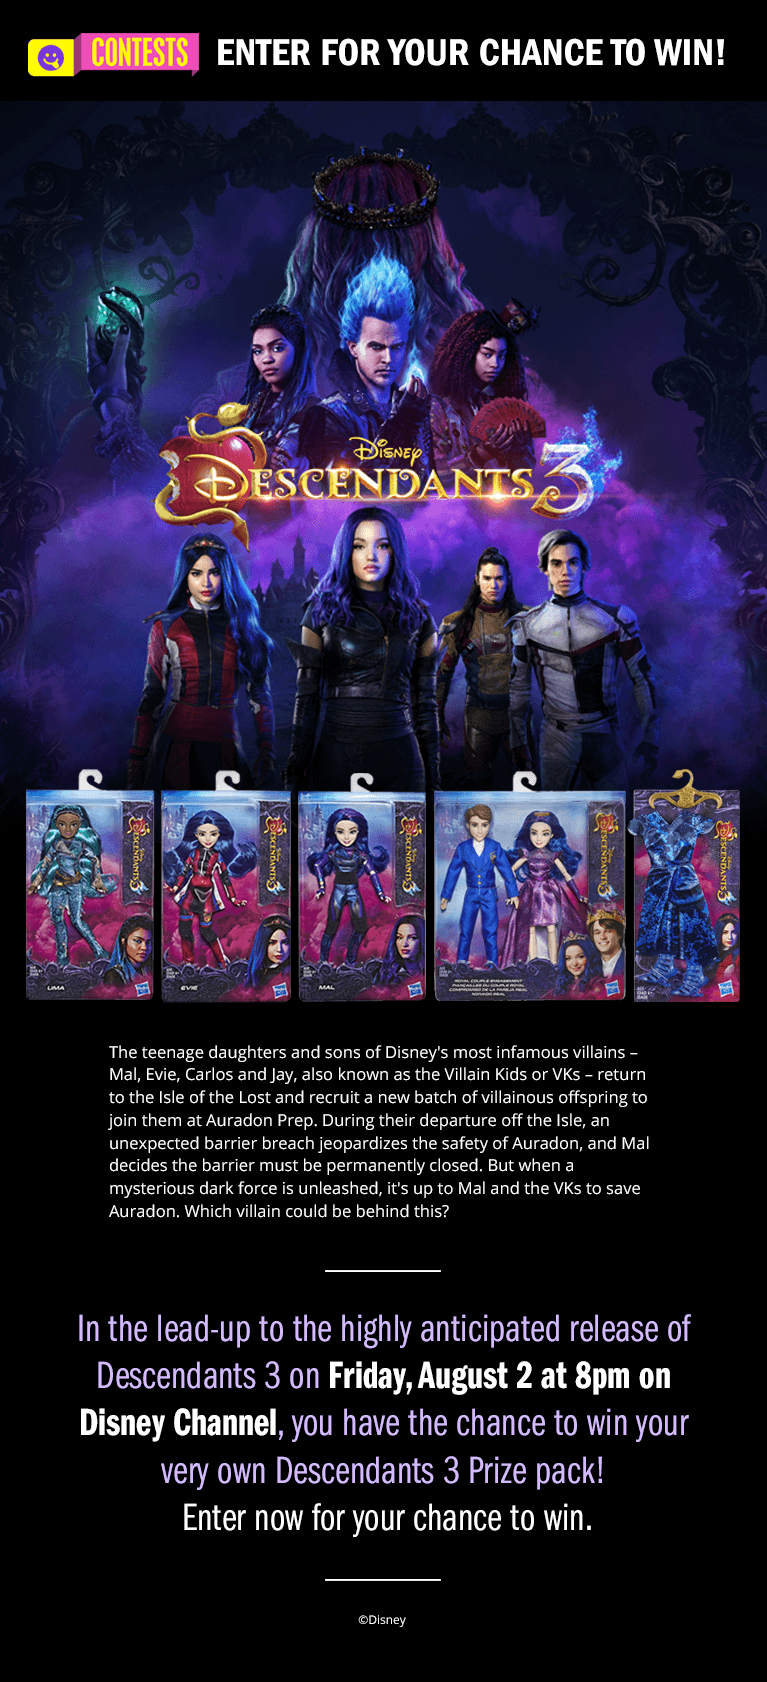 Descendants 3 - Enter | Disney Channel Contest